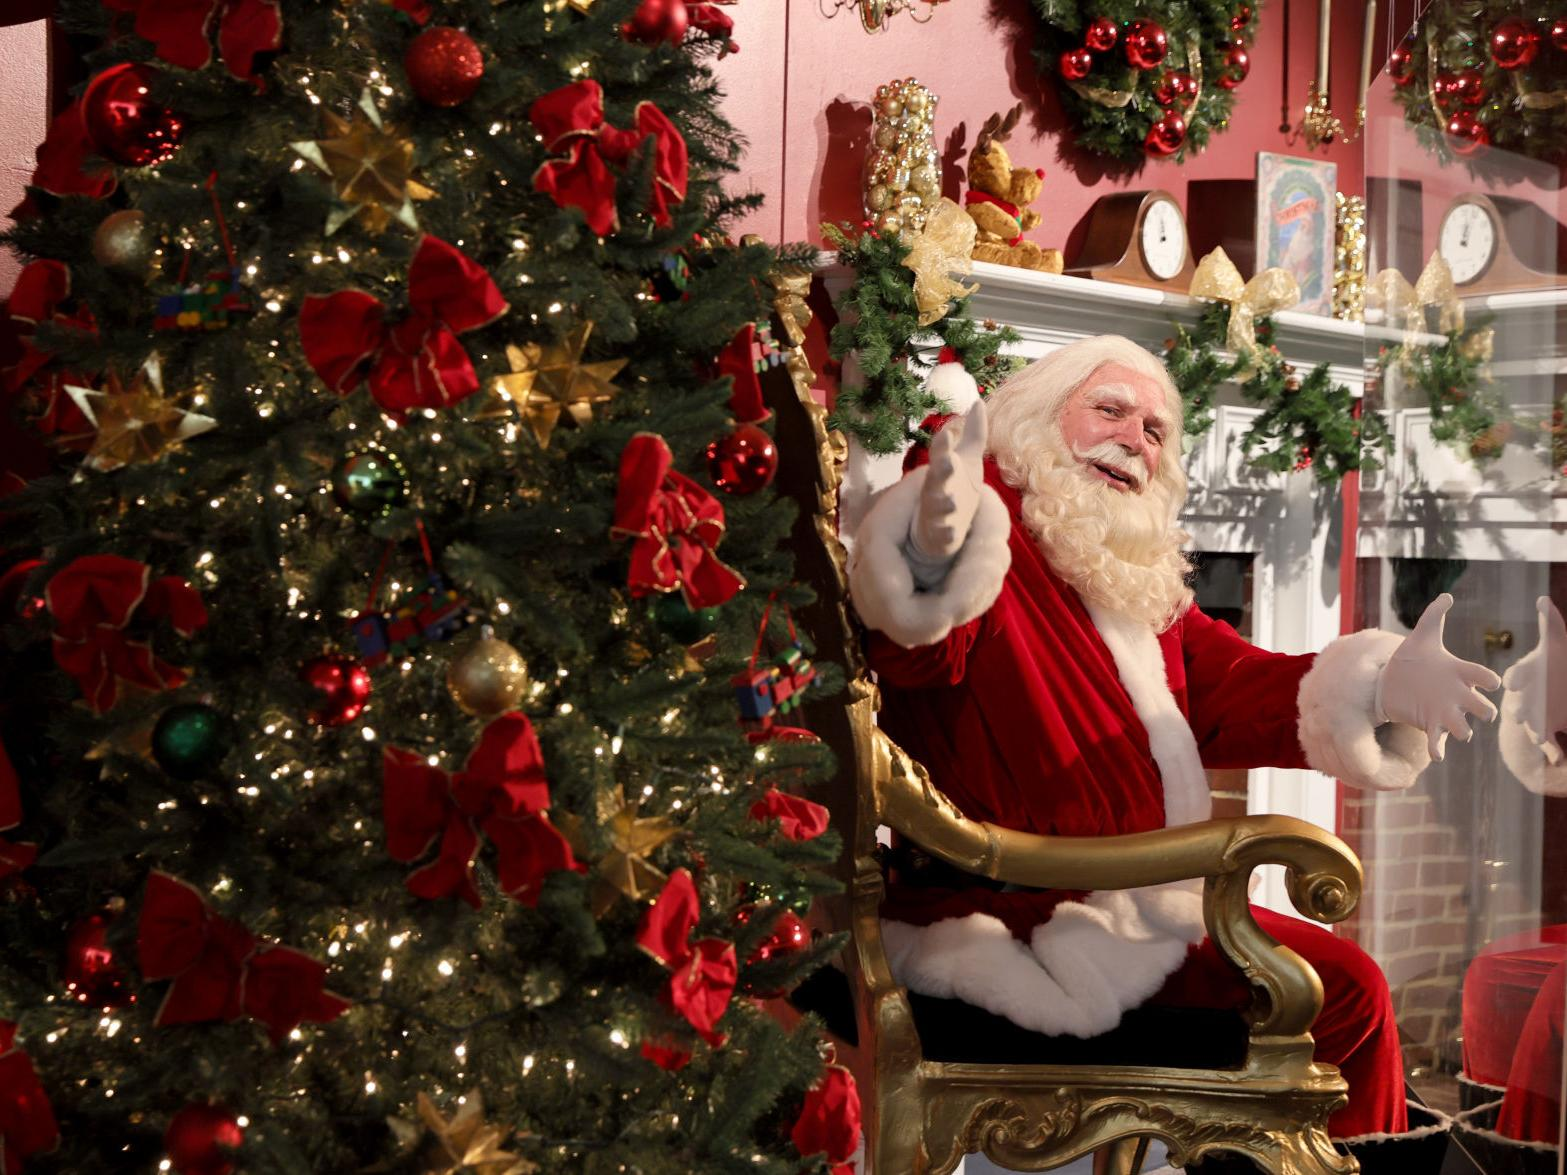 Christmas Eve 2021 Richmond Legendary Santa Tickets Sell Out In 2 Hours Other Santa Options Around Richmond Include Plexiglas And Zoom Entertainment Richmond Com